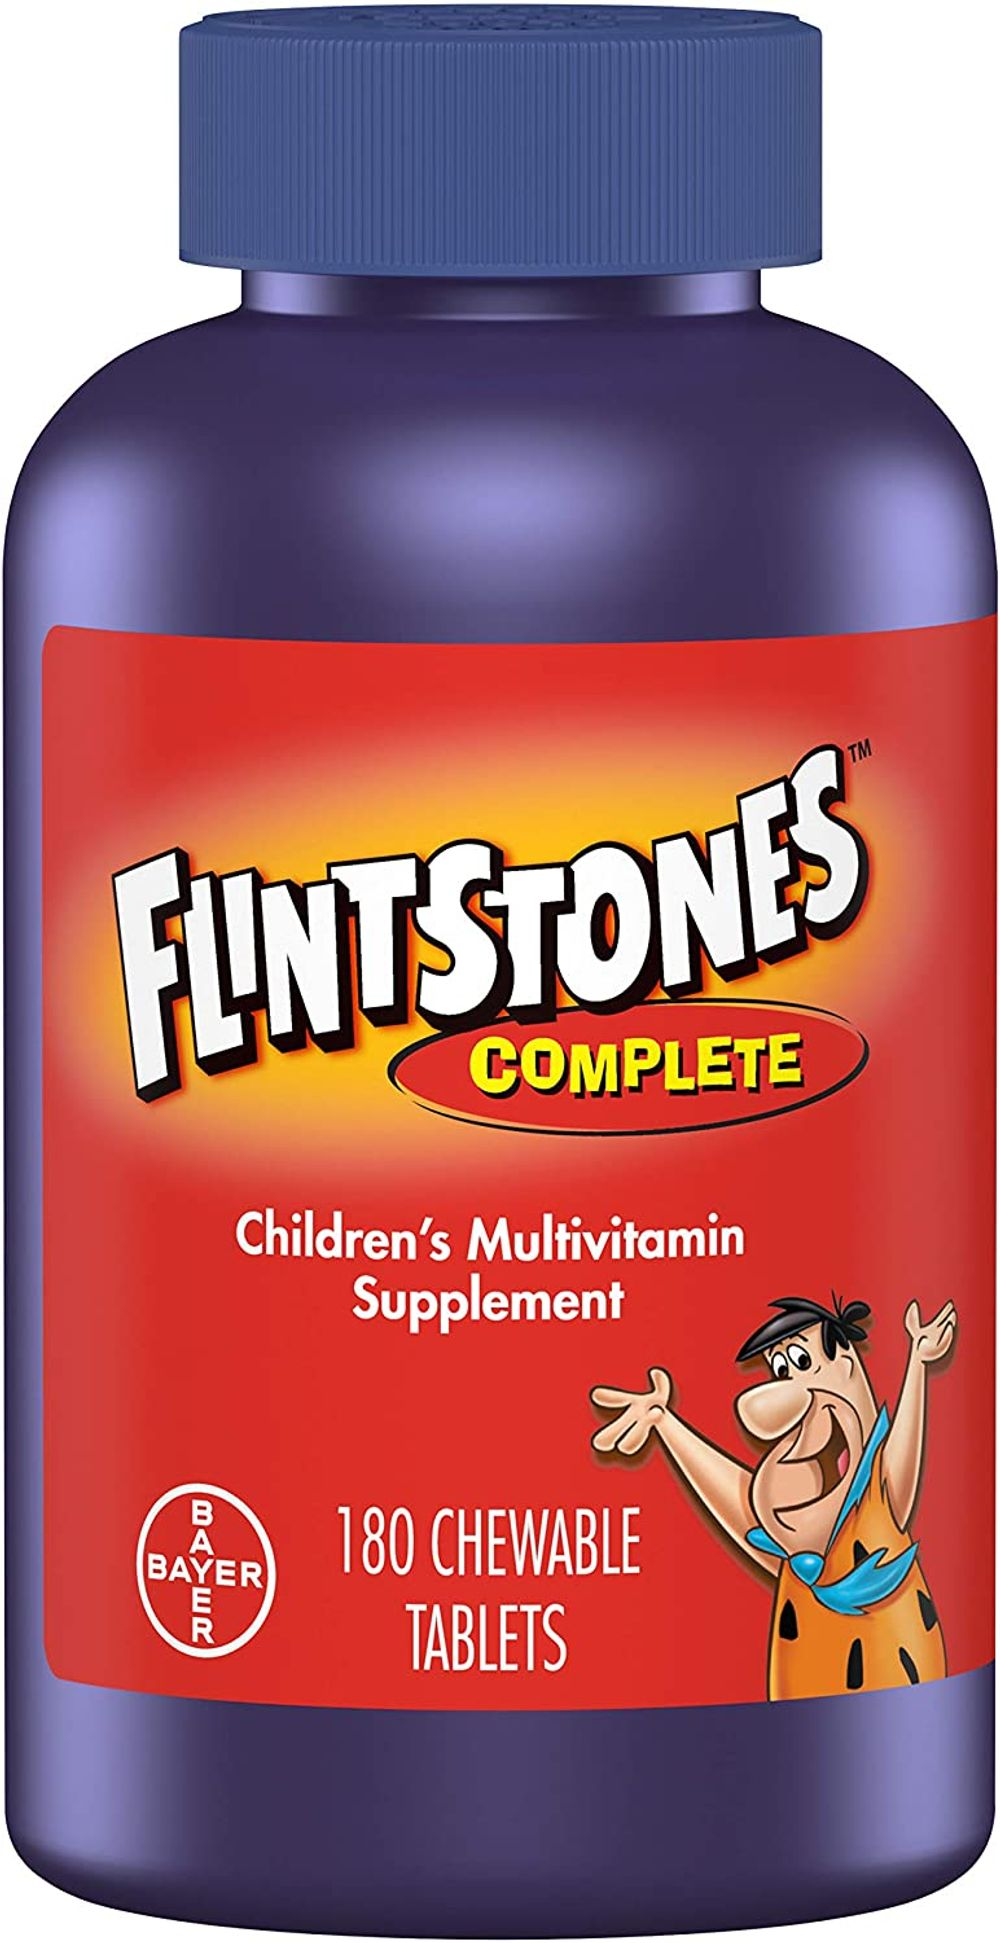 Flintstones Vitamins Chewable Kids Vitamins, Complete Multivitamin for Kids and Toddlers with Iron, Calcium, Vitamin C, Vitamin D & More, ct Original Version Fruit, 180 Count (Pack of 1)